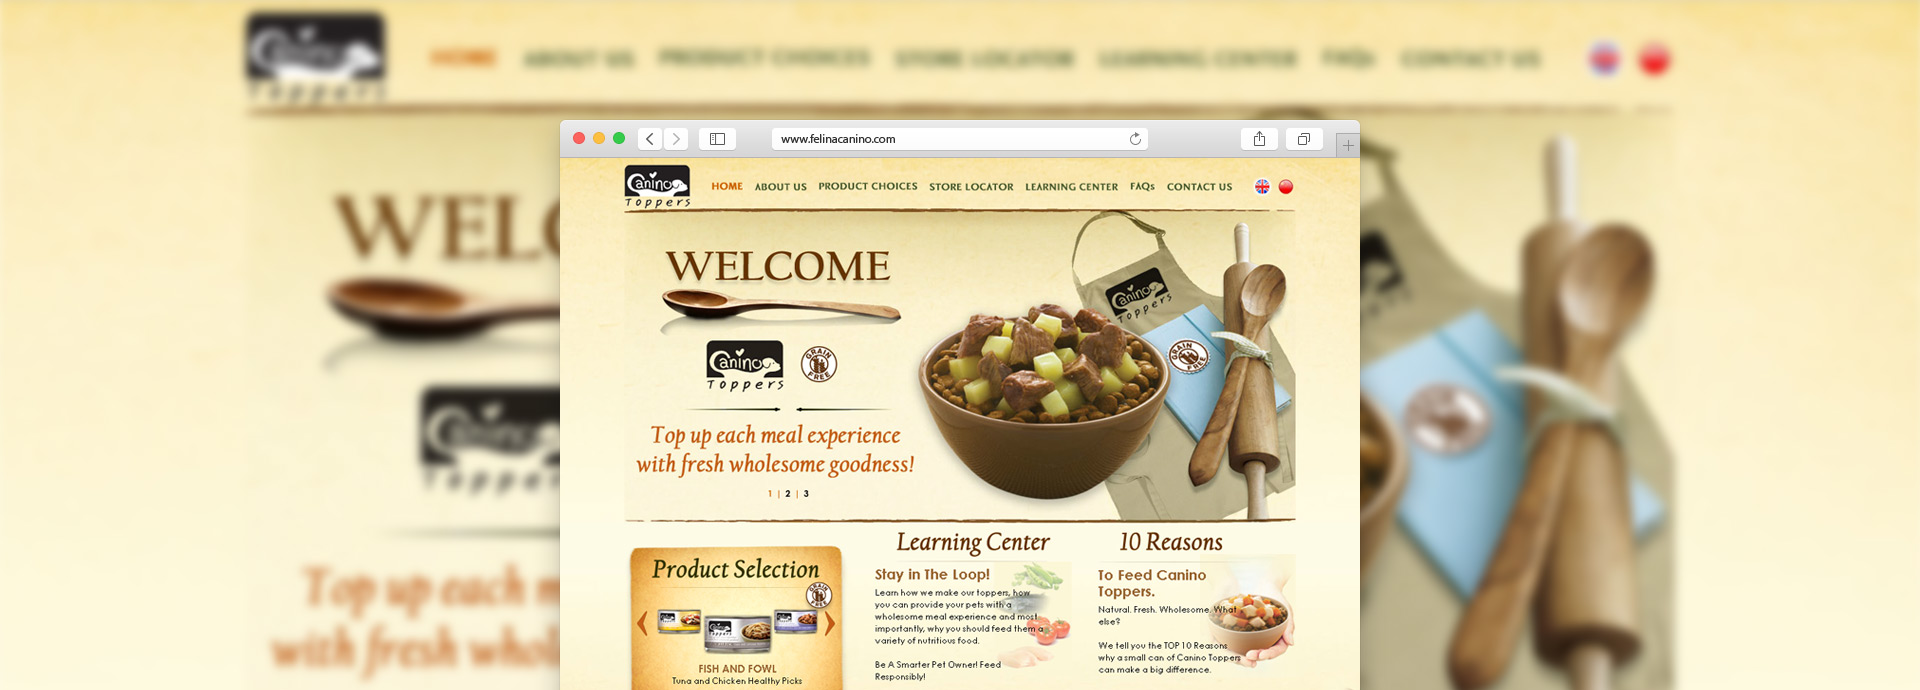 ClickseeDesign Develops New Website for Canino Toppers